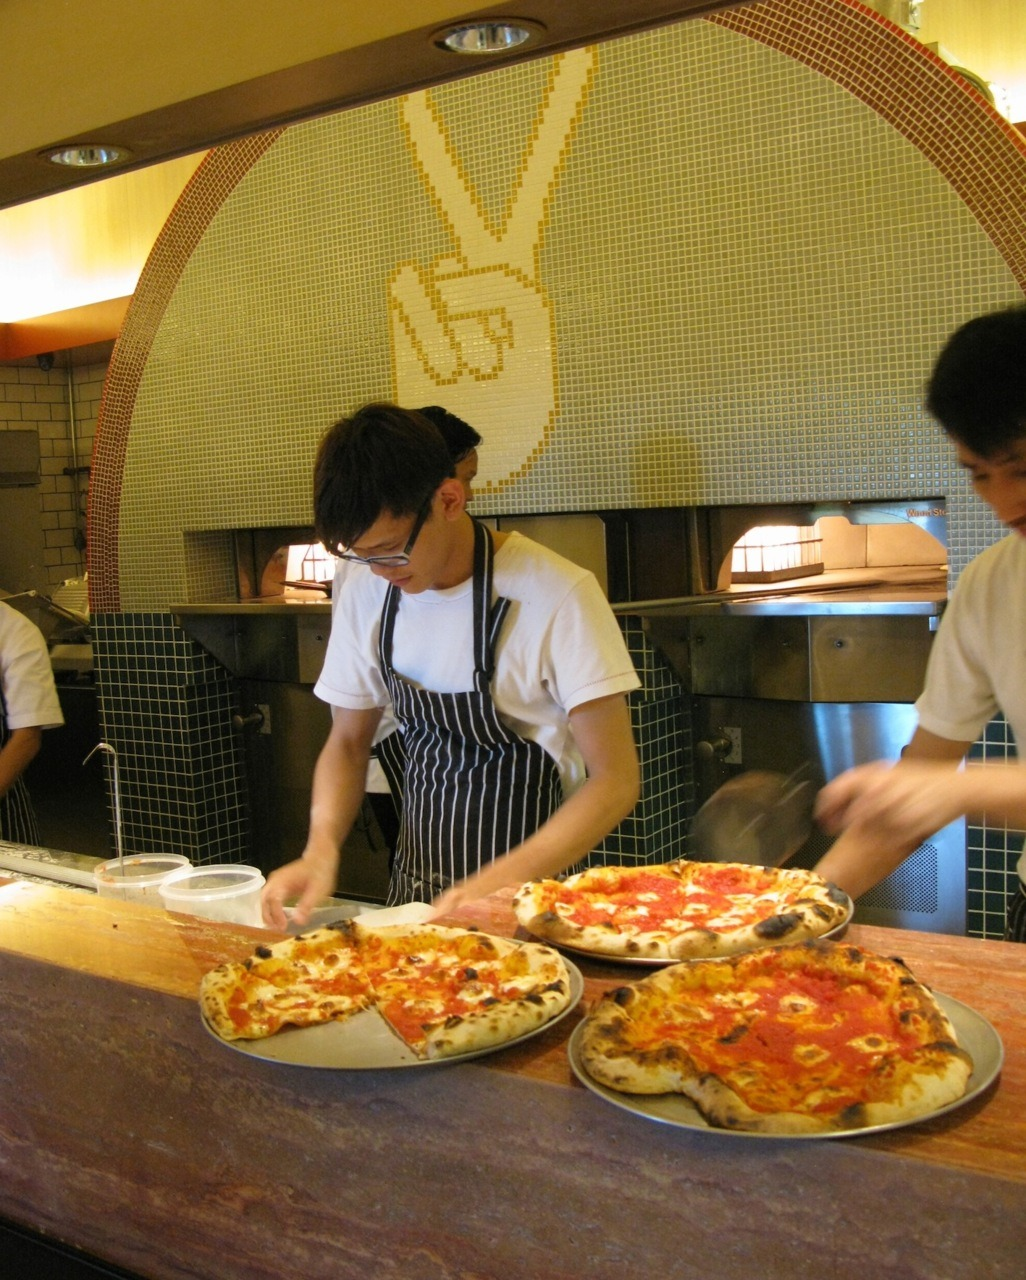 The first pizzas are out the oven.